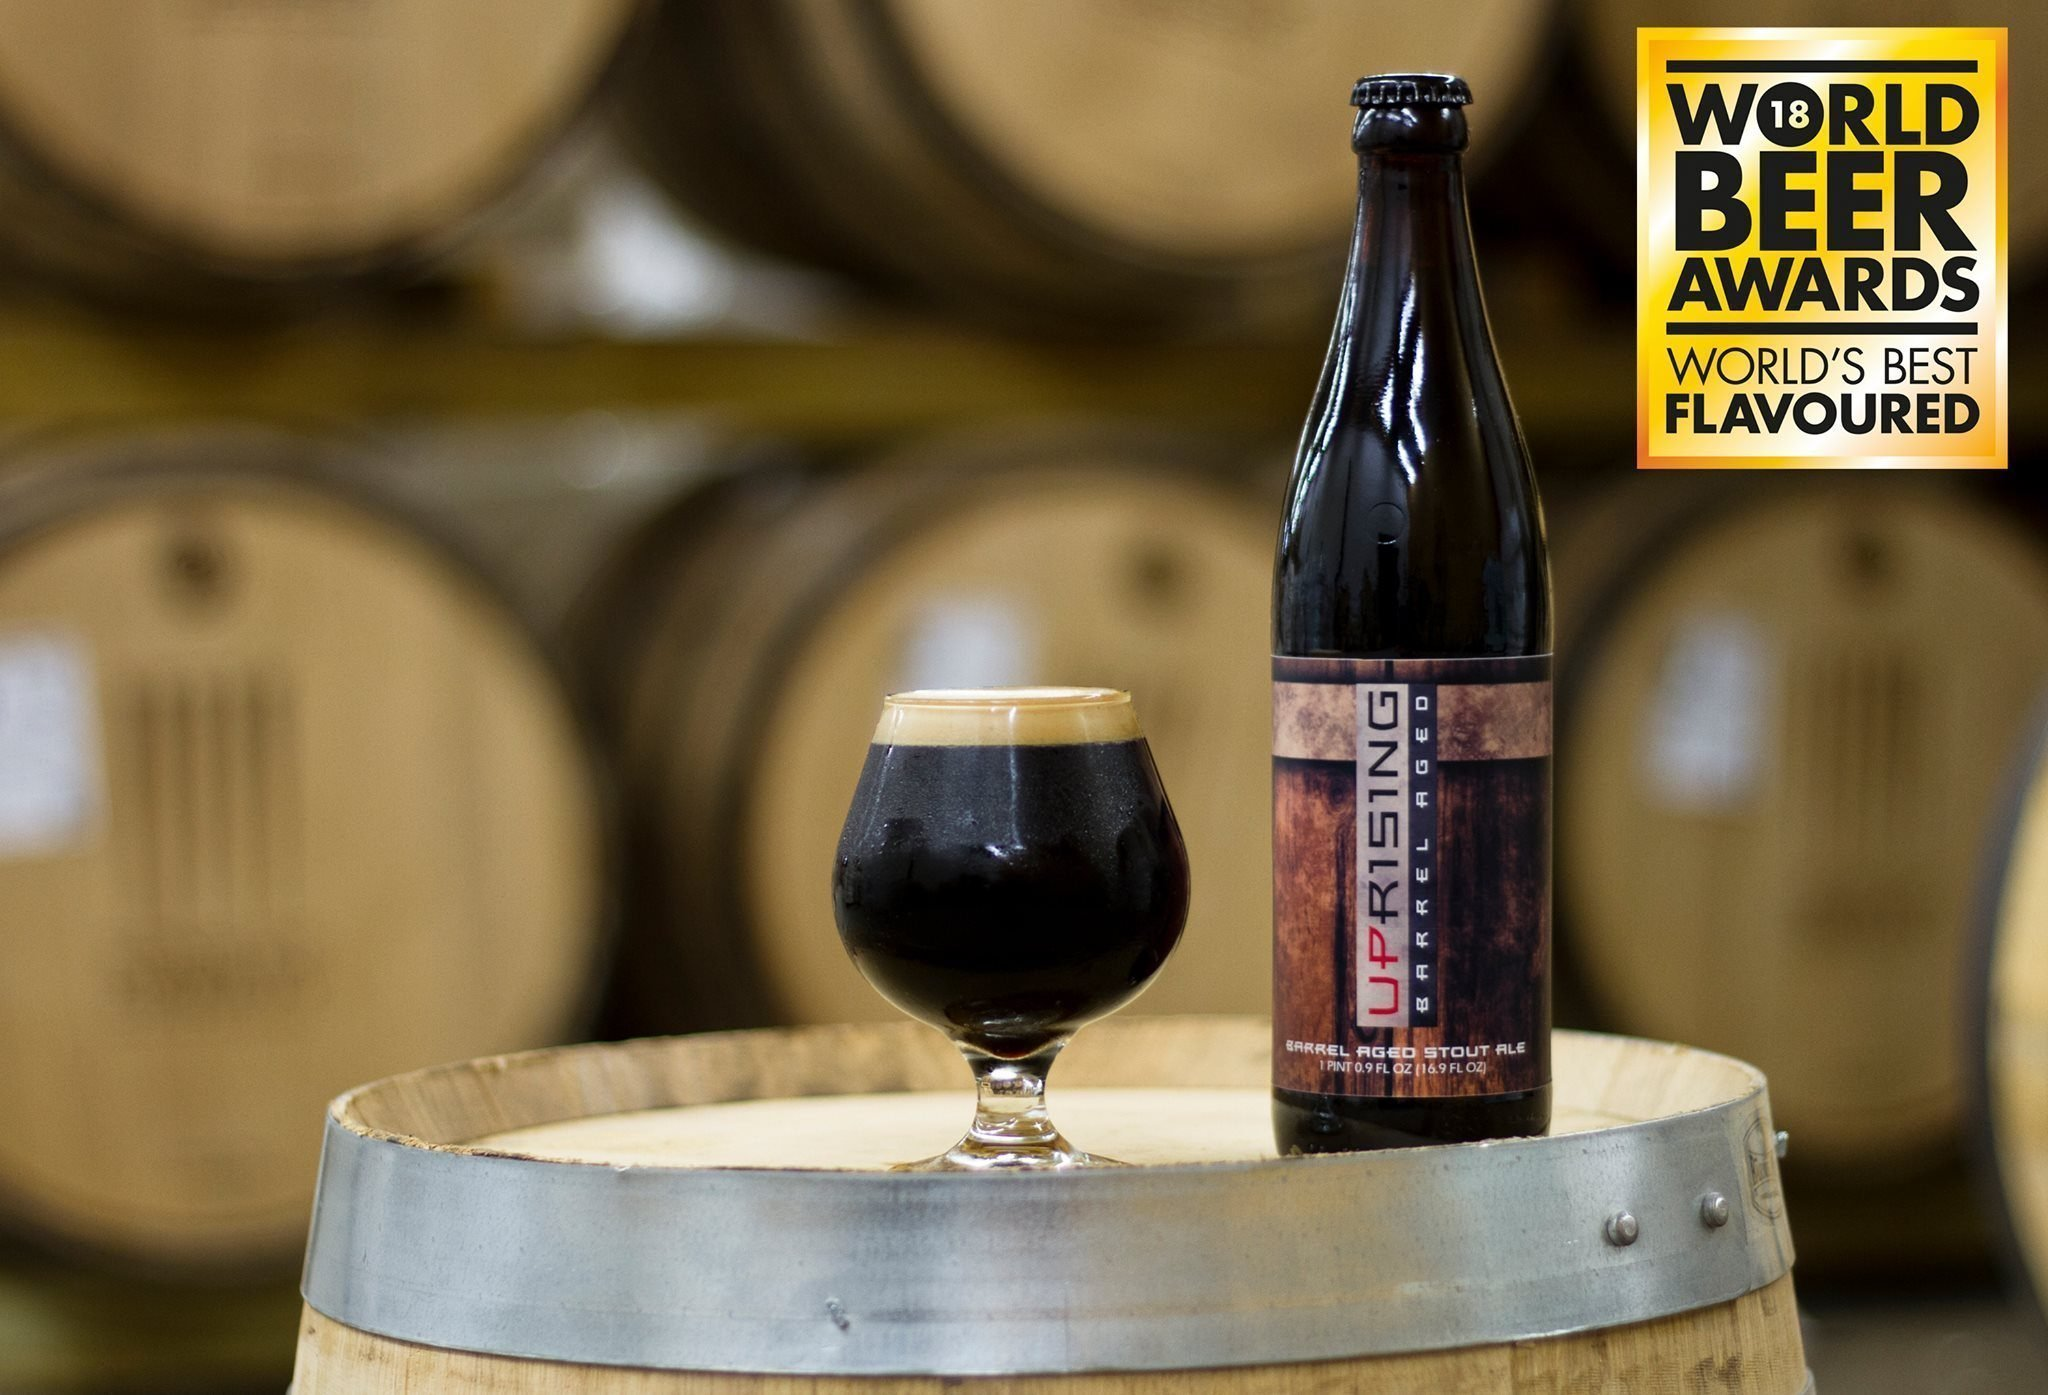 Sons of Liberty's Barrel Aged Uprising Stout Ale